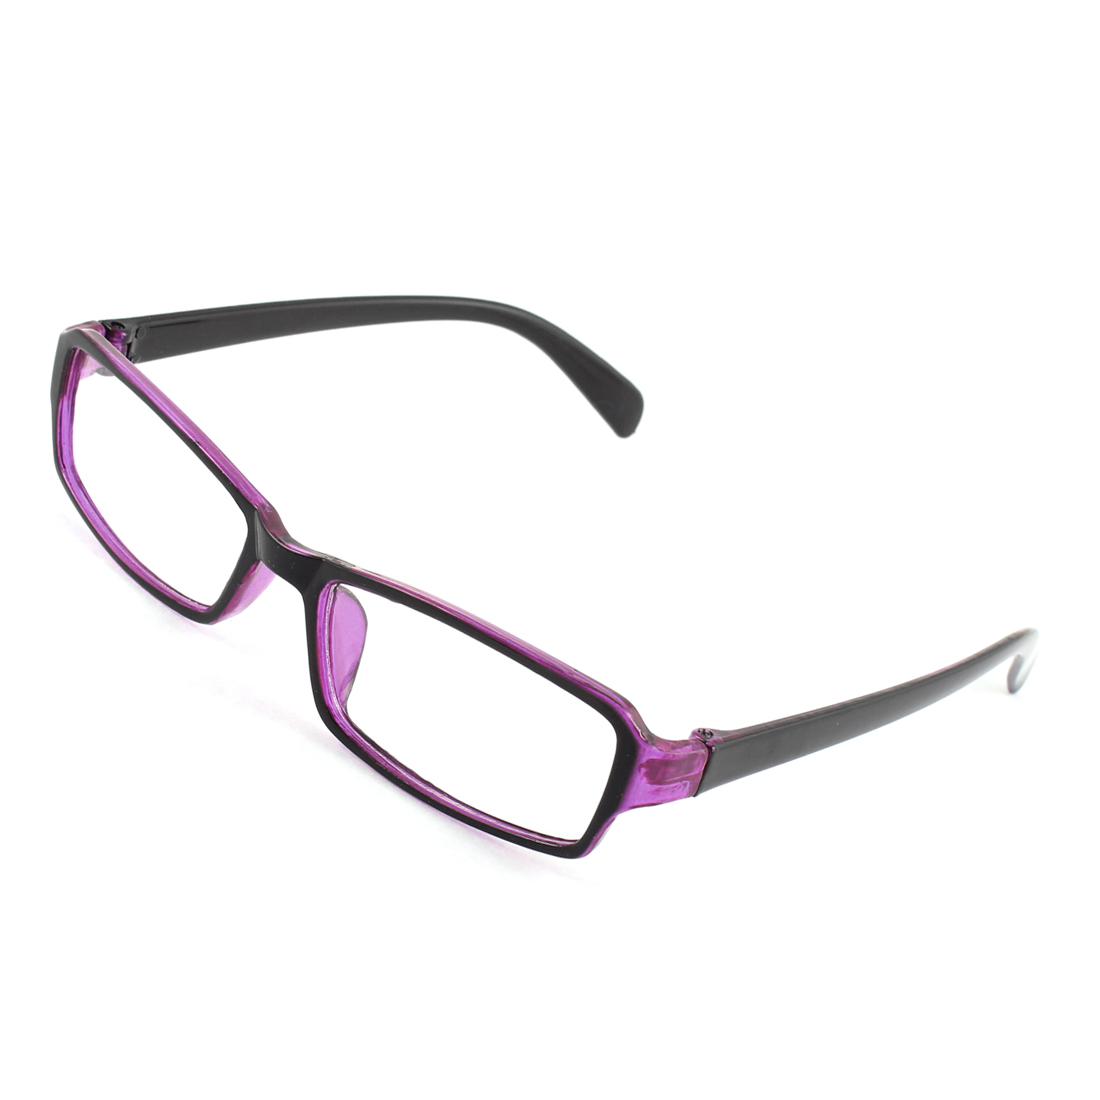 Women Plastic Frame Rectangle Clear Lens Eyewear Plain Glasses Purple Black